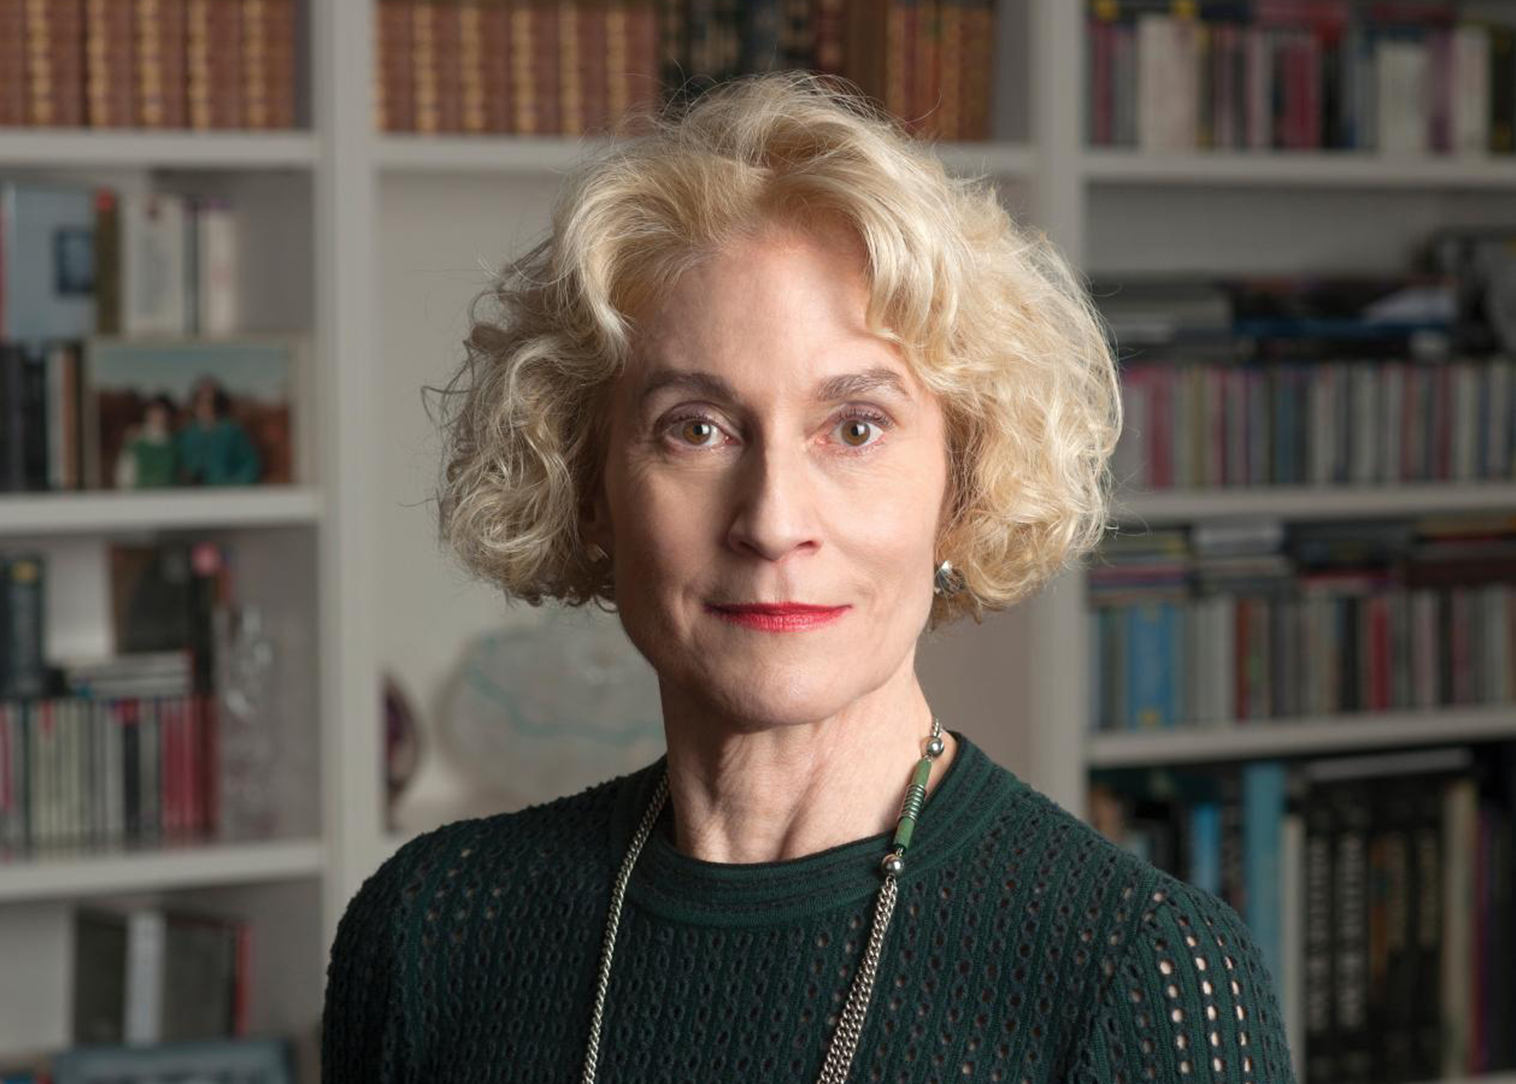 $1 Million Annual Berggruen Prize for Philosophy & Culture Awarded to Public Philosopher Martha C. Nussbaum